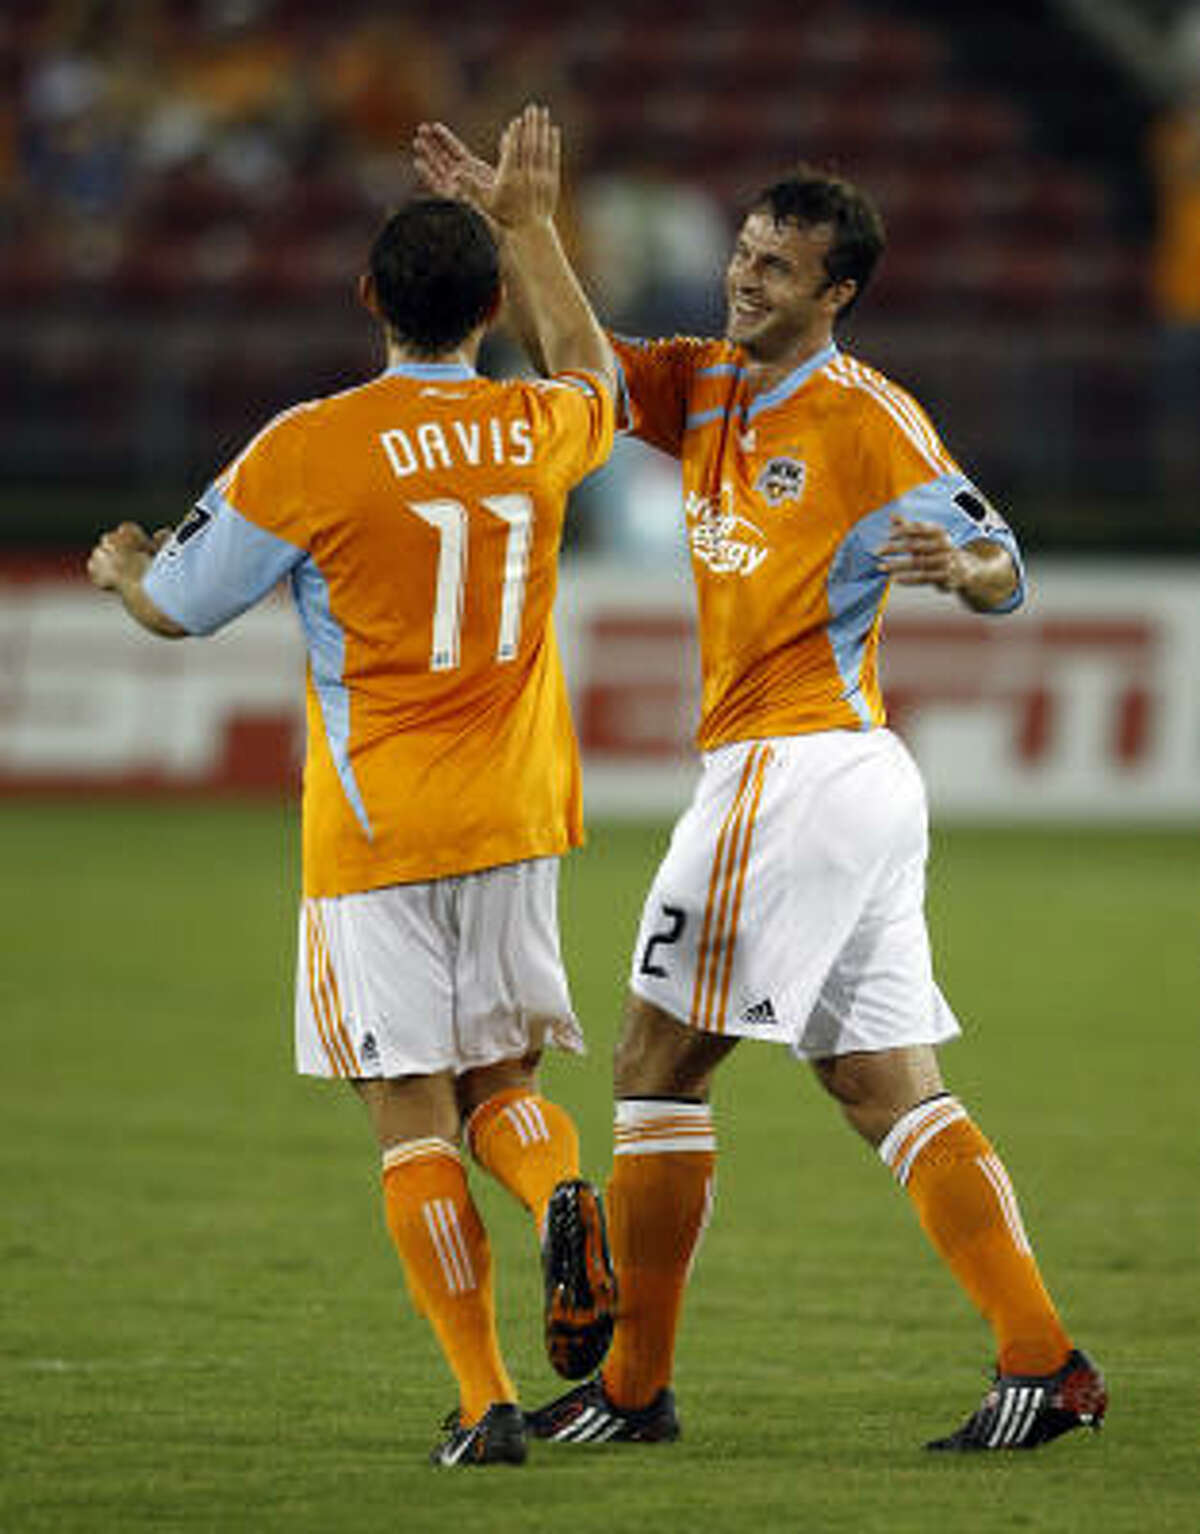 Eddie Robinson, right, celebrates his goal with Brad Davis during first half action. Robinson was making his return from preseason knee surgery.